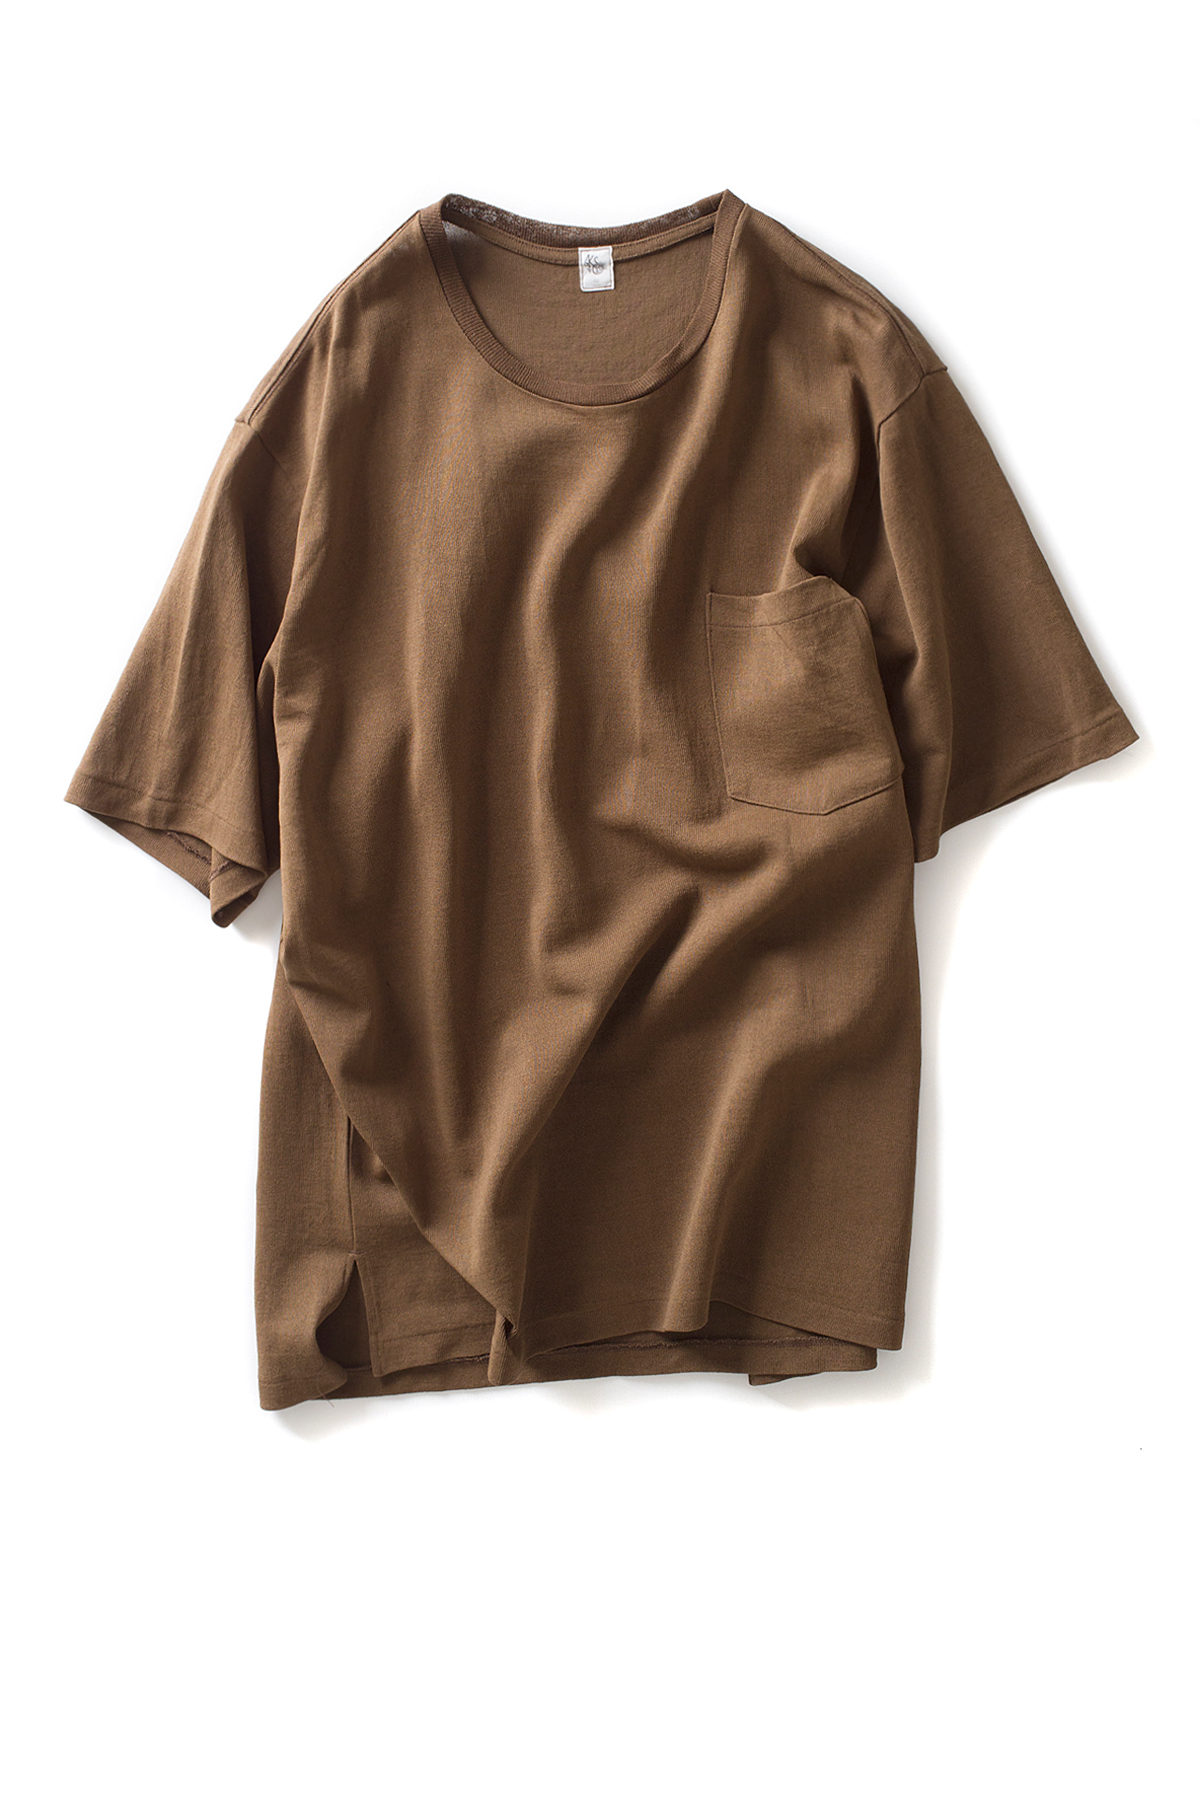 Kaptain Sunshine : Pocket Tee (Brown)